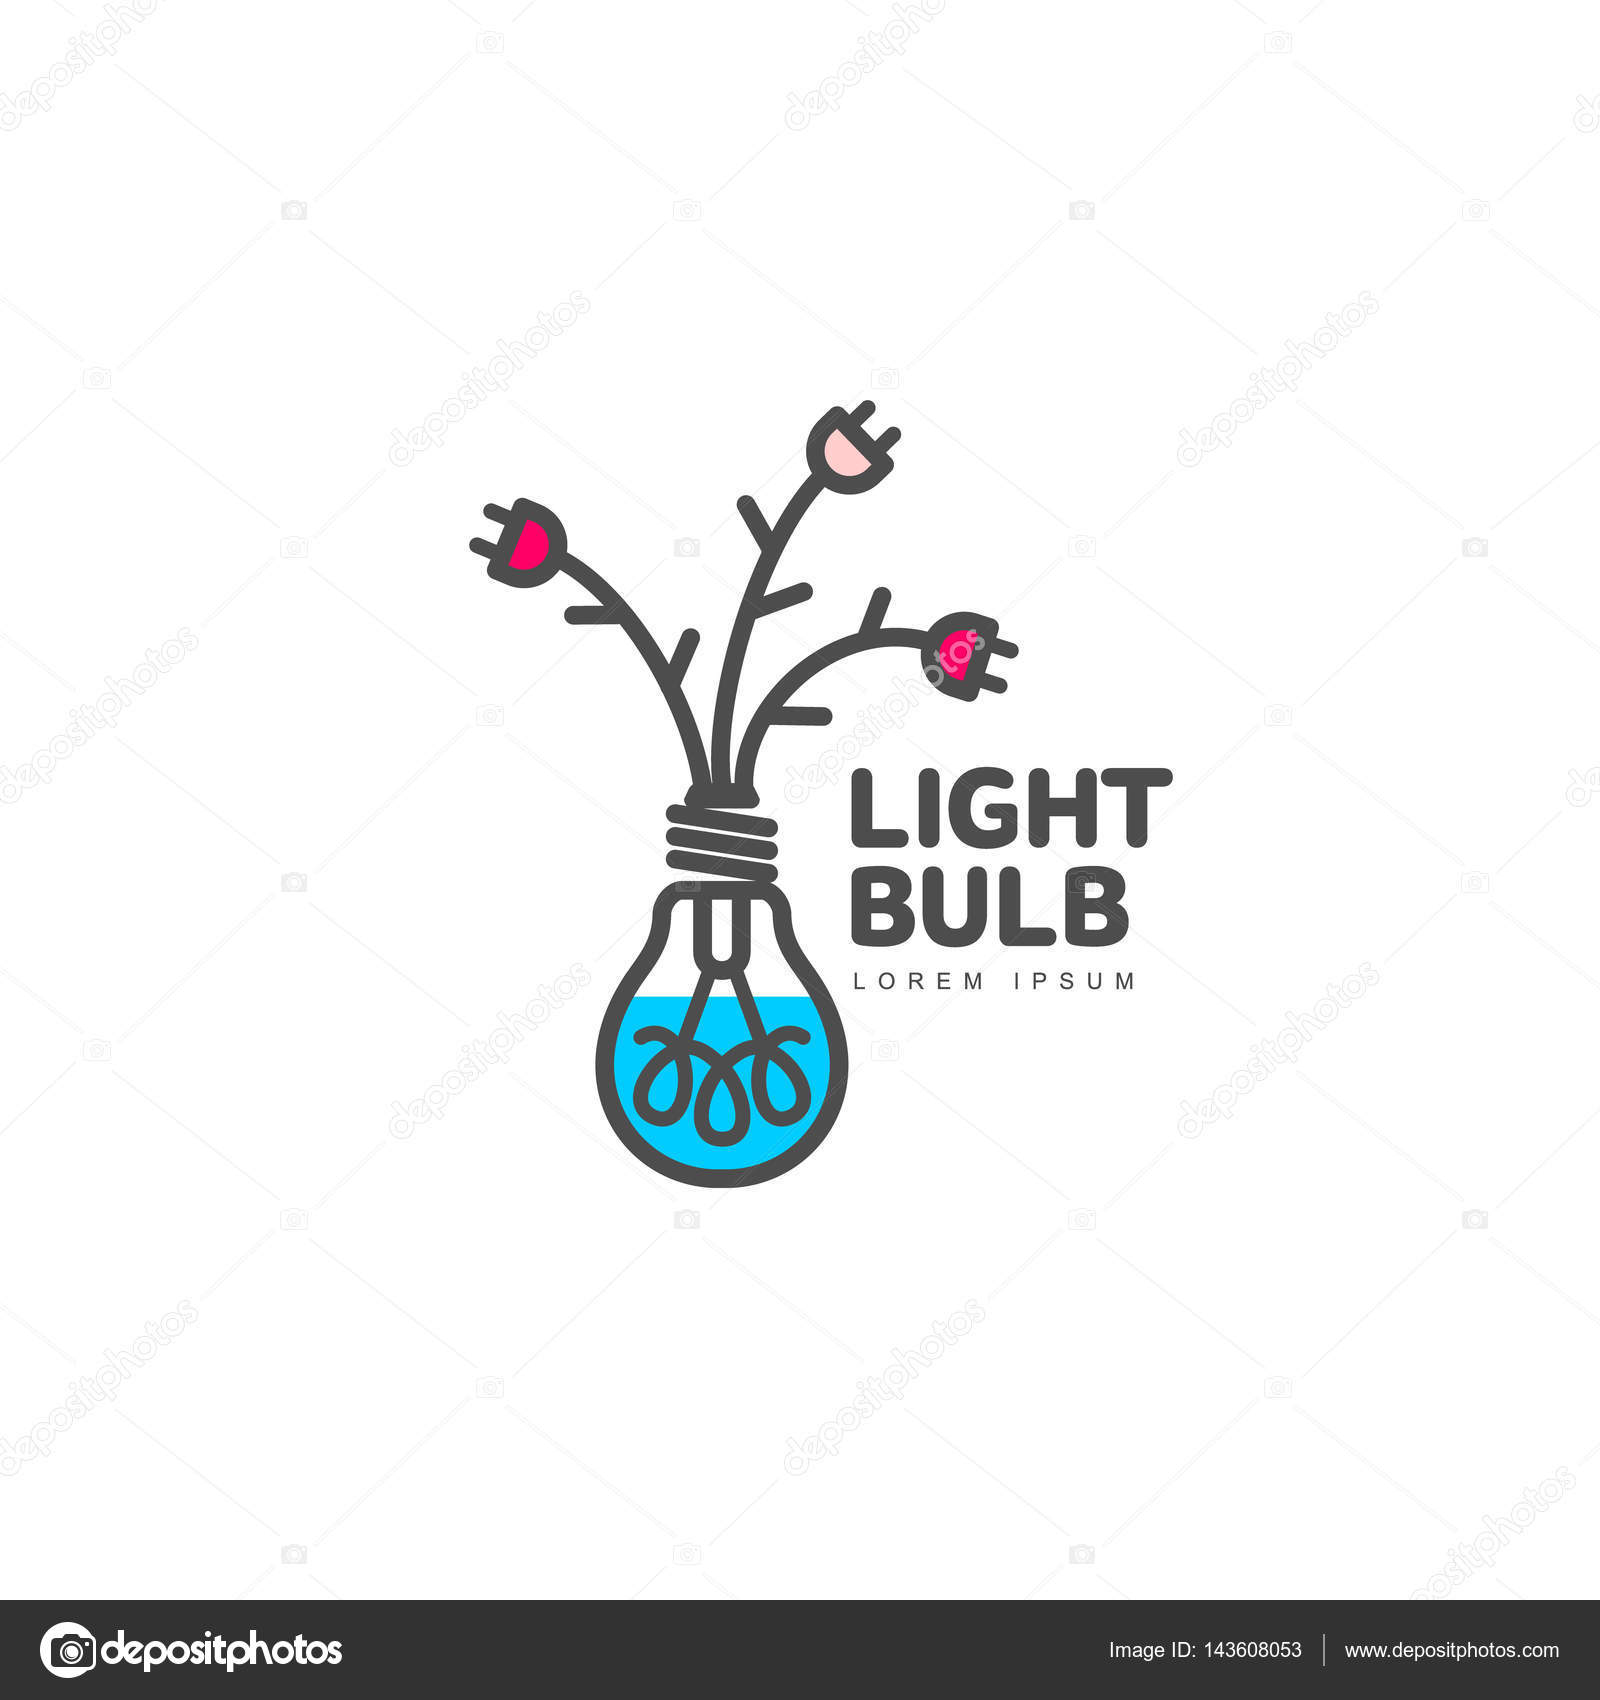 wiring diagram database  light bulb logo with flowers formed by cables and  plugs